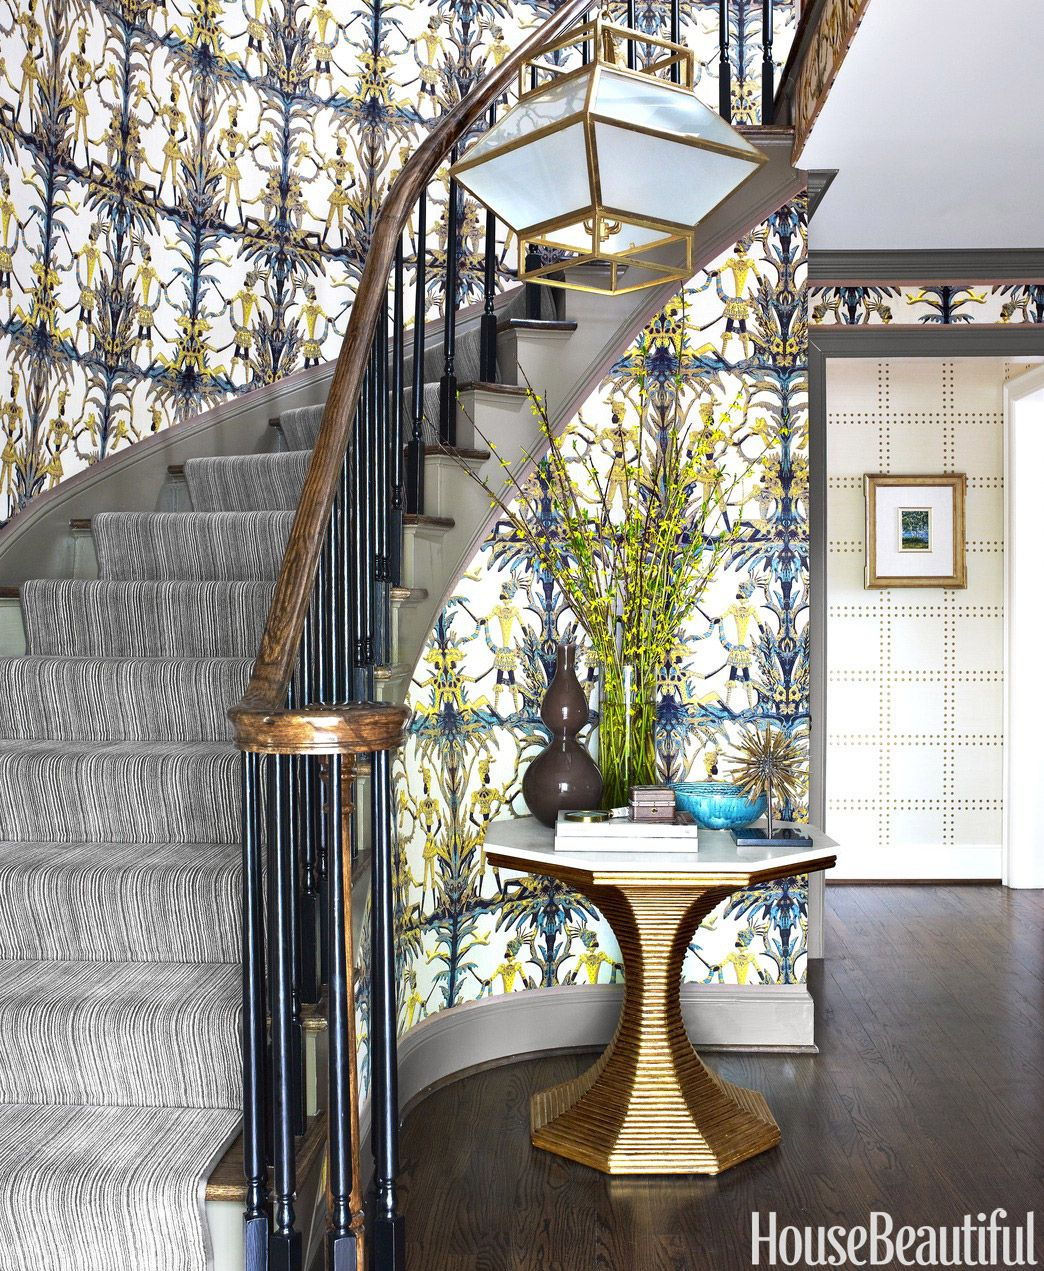 Design Ideas Tips Inspiration: 11 Decorating Tips On How To Style An Impressive Entrance